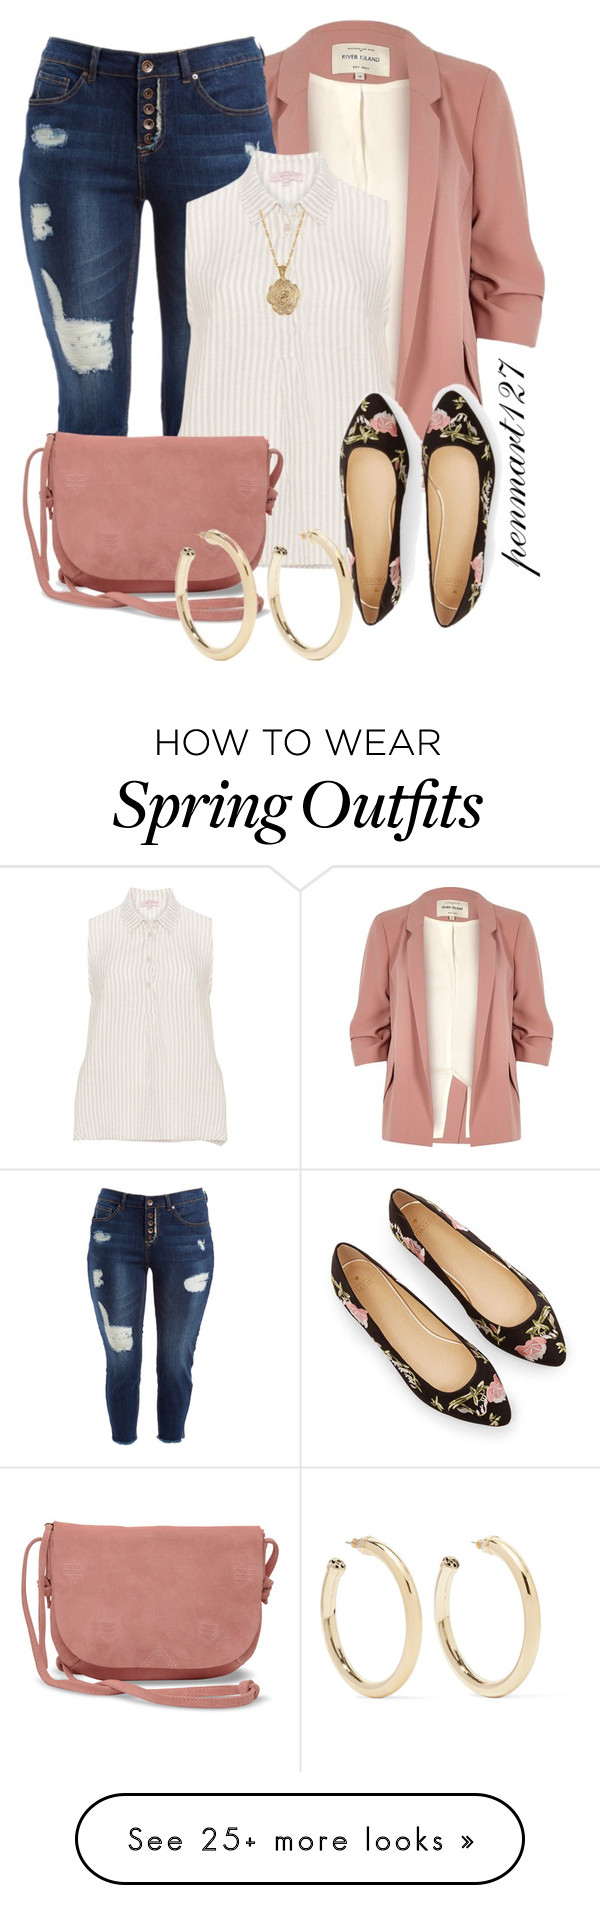 """#Plussize Blazer Outfit"" by penny-martin on Polyvore featuring River Island, Dollhouse, TOMS, 2028 and Kenneth Jay Lane"